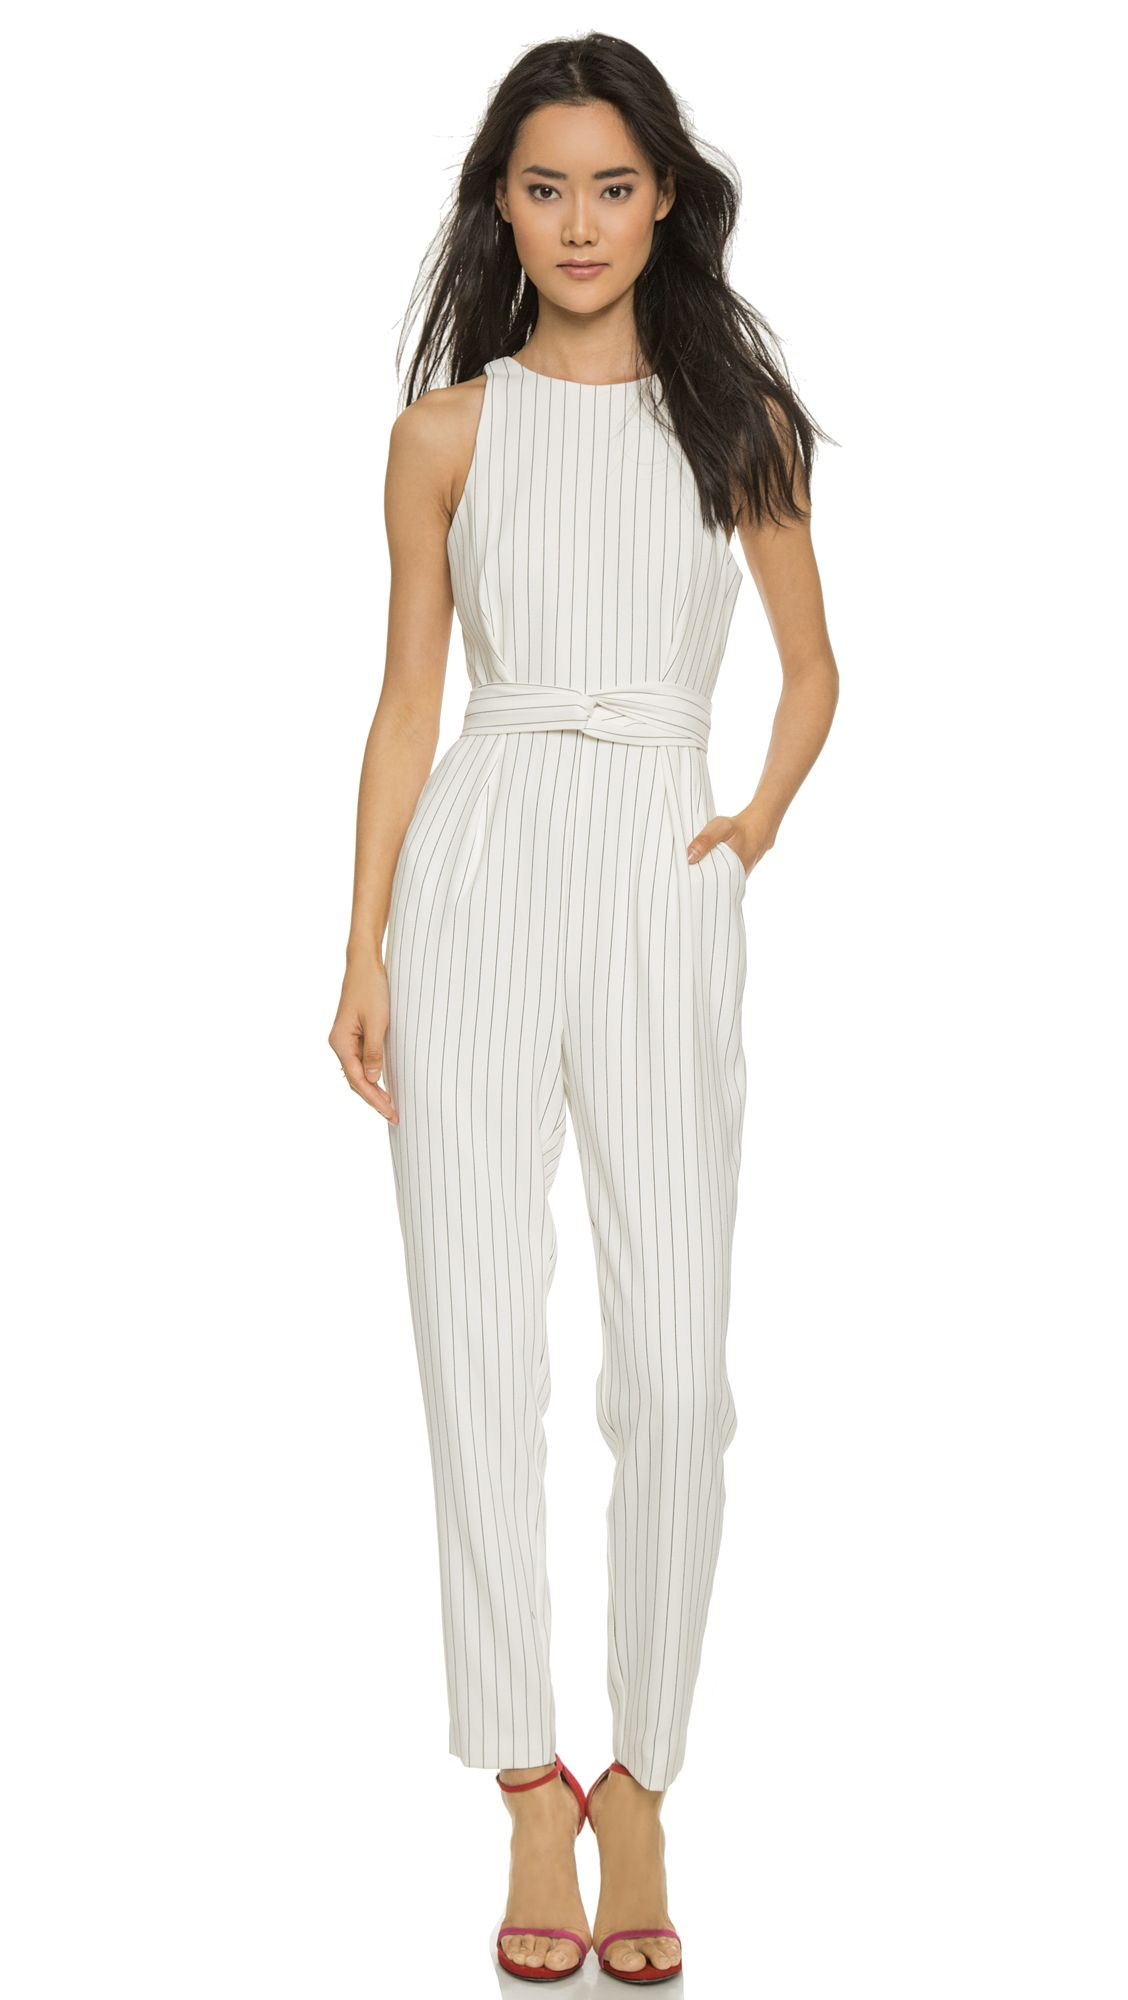 c0bc636a423 Finders Keepers As You Are Twist Long Jumpsuit - Pinstripe White in White  (Pinstripe white)